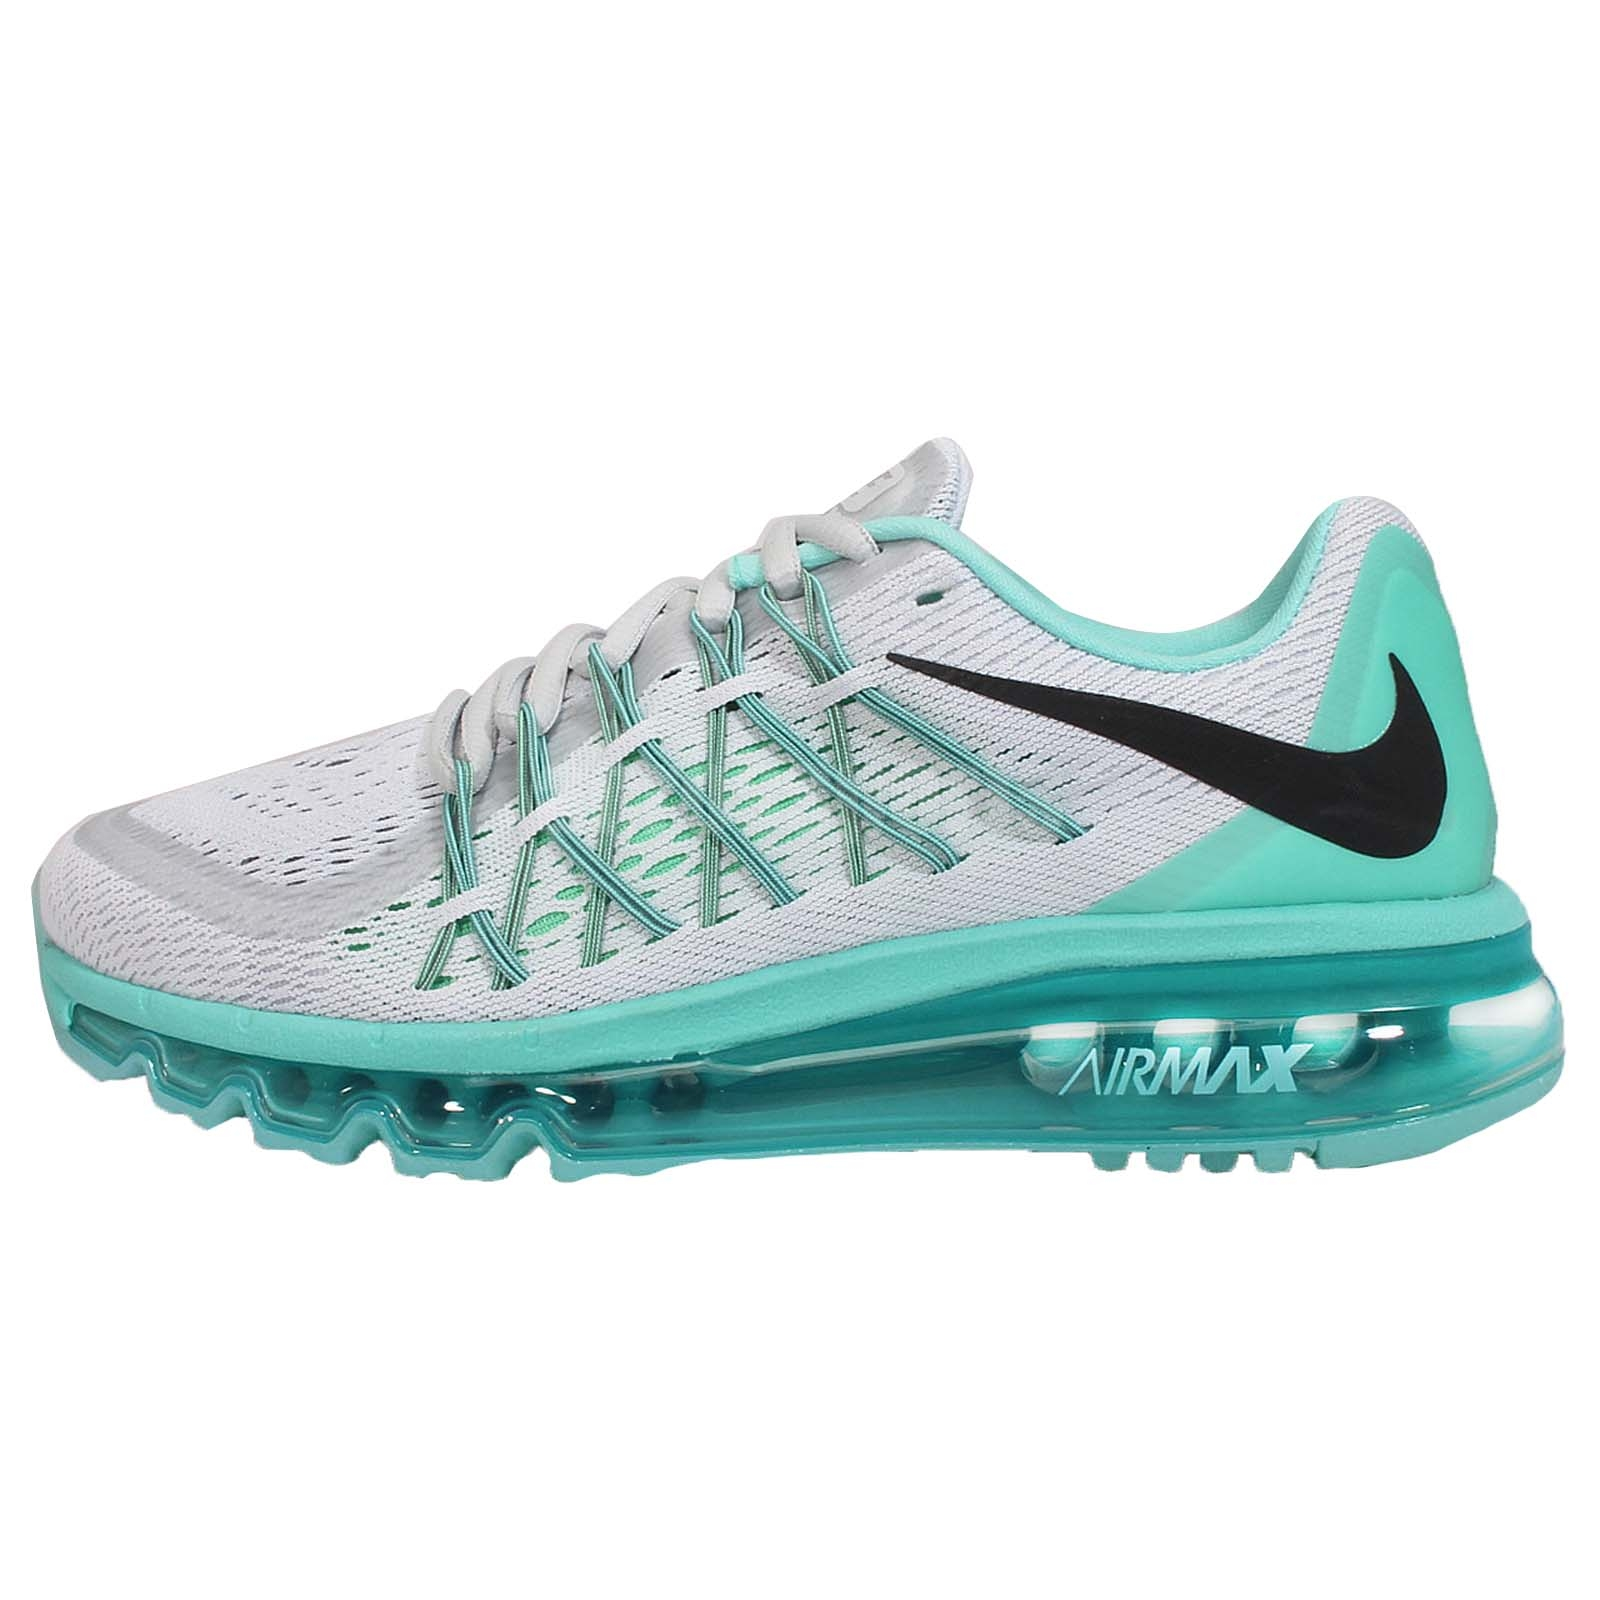 up and running nike customers are Nike free shoes only $21,#nike #free #shoes nike free shoes only $21,#nike #free #shoes.